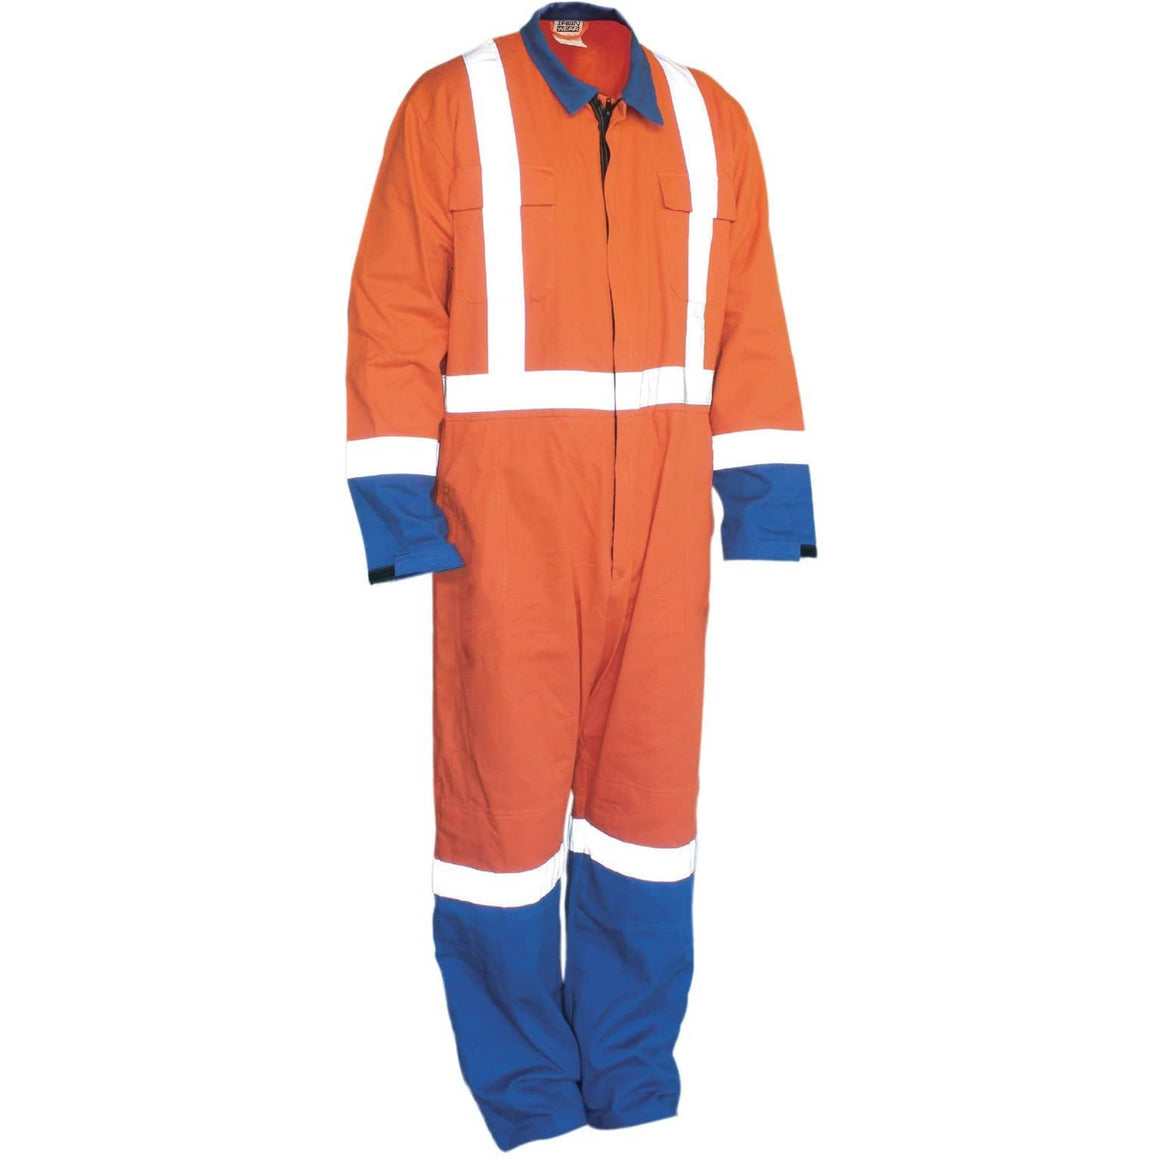 Ironwear 100% Cotton Hi Vis Overalls